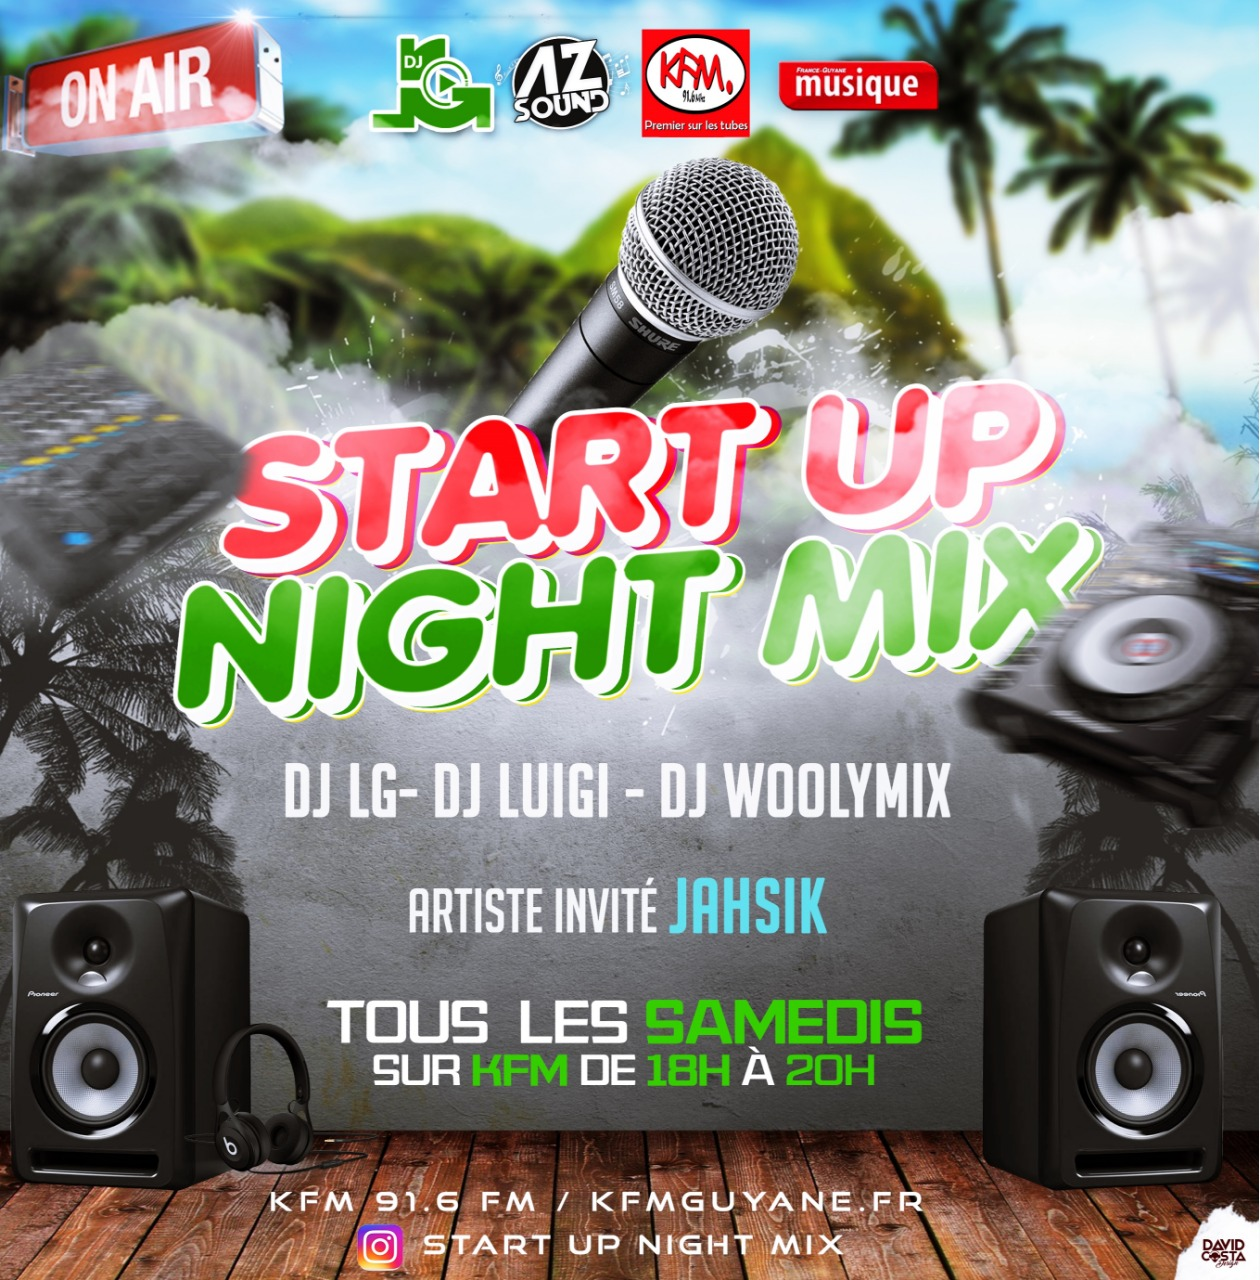 Start Up Night Mix sur KFM (91.6 fm)